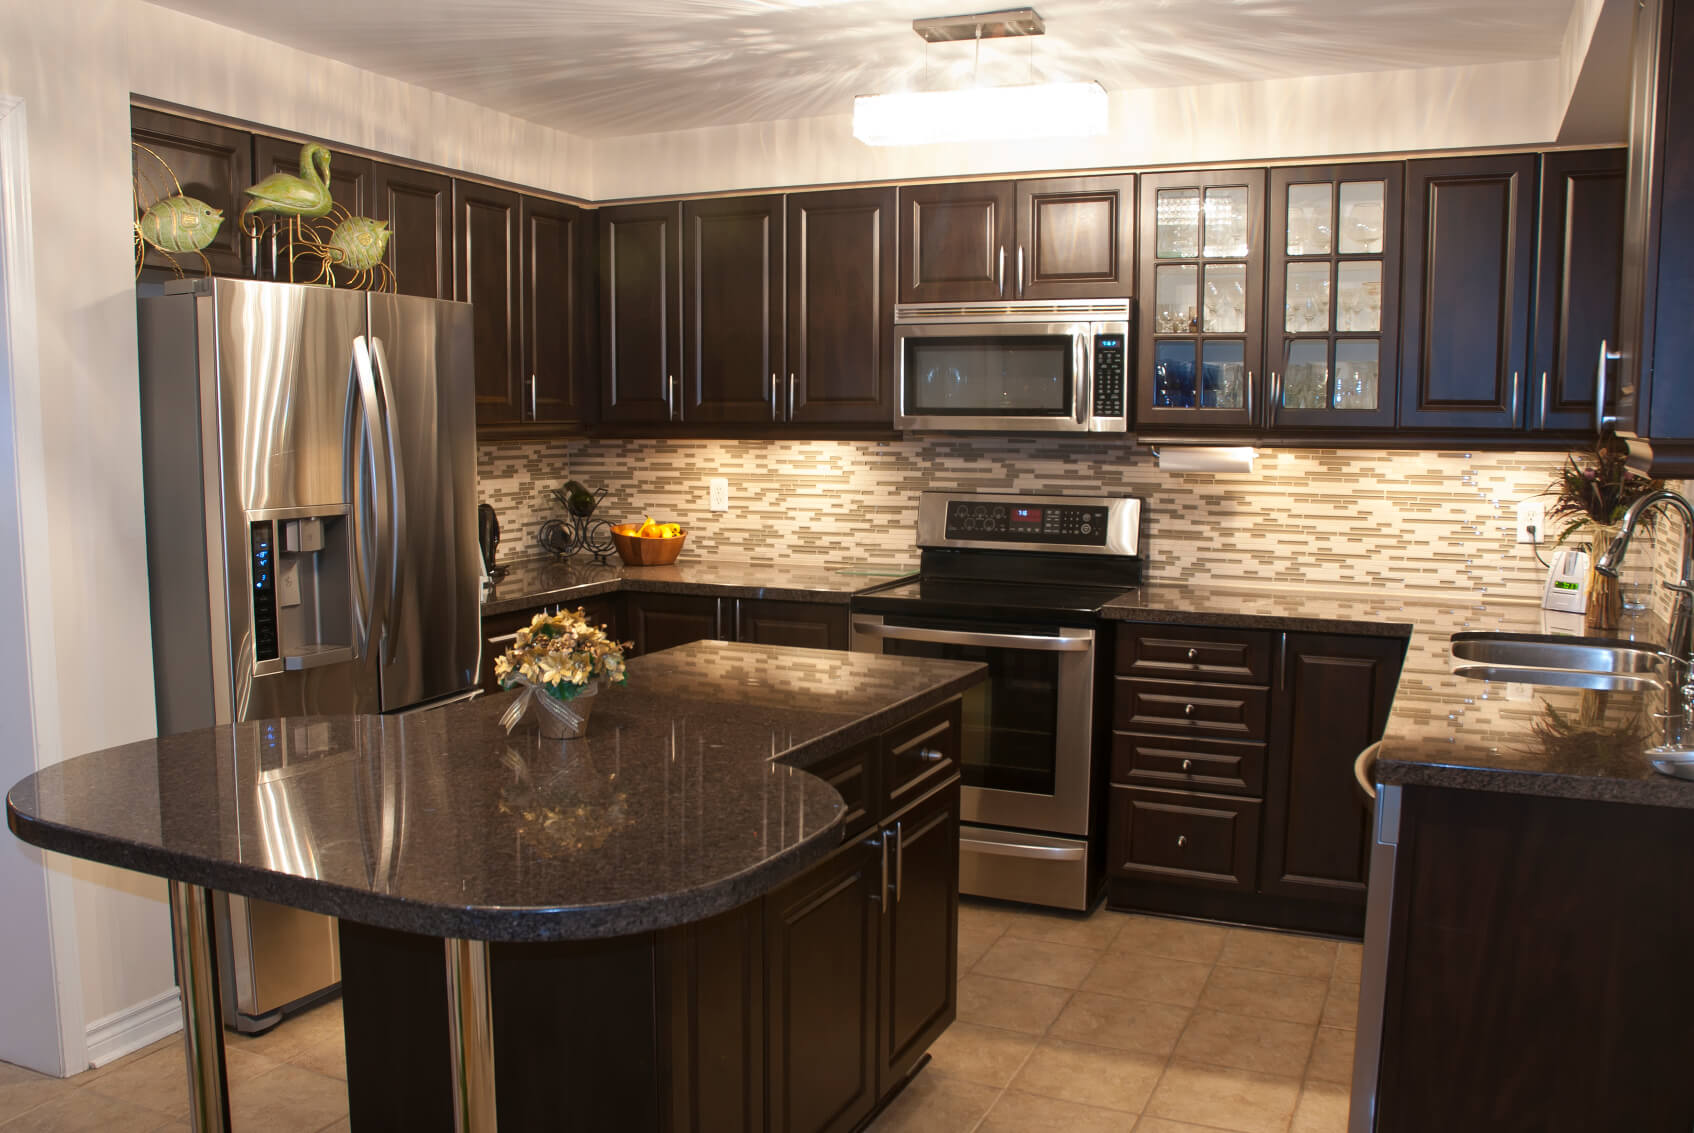 dark kitchen cabinets kitchen black cabinets Cozy kitchen is stuffed with dark wood cabinetry with brushed metal hardware Black marble